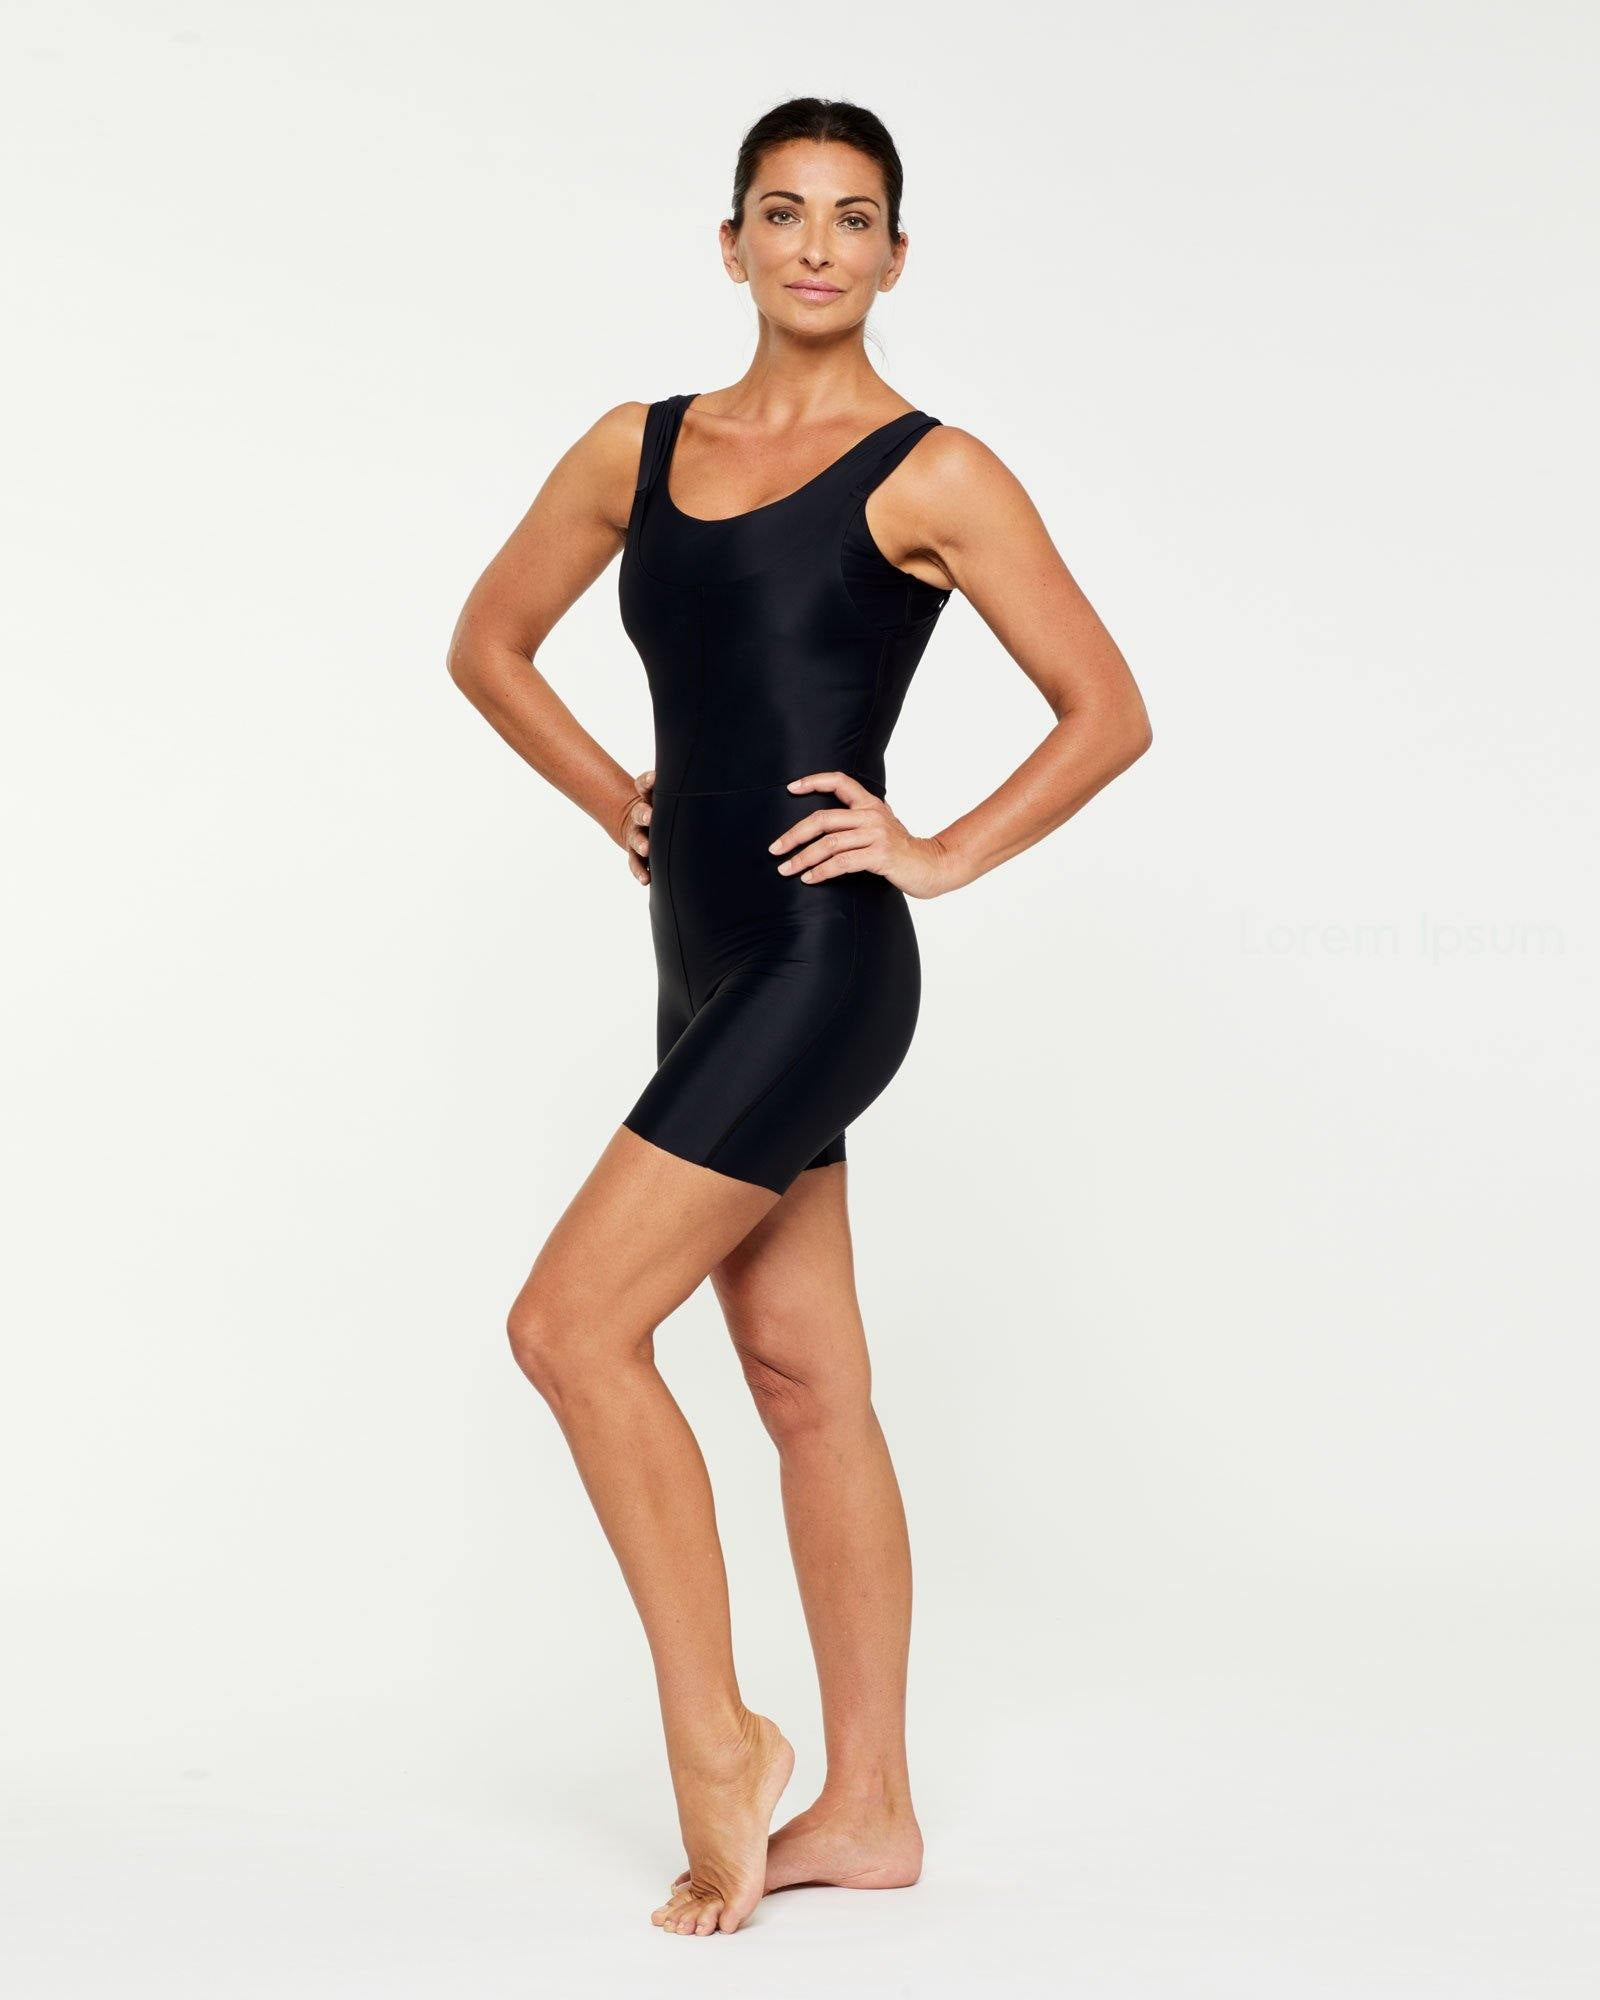 Companion RECTUS SHORT BODYSUIT worn high front low back, side view